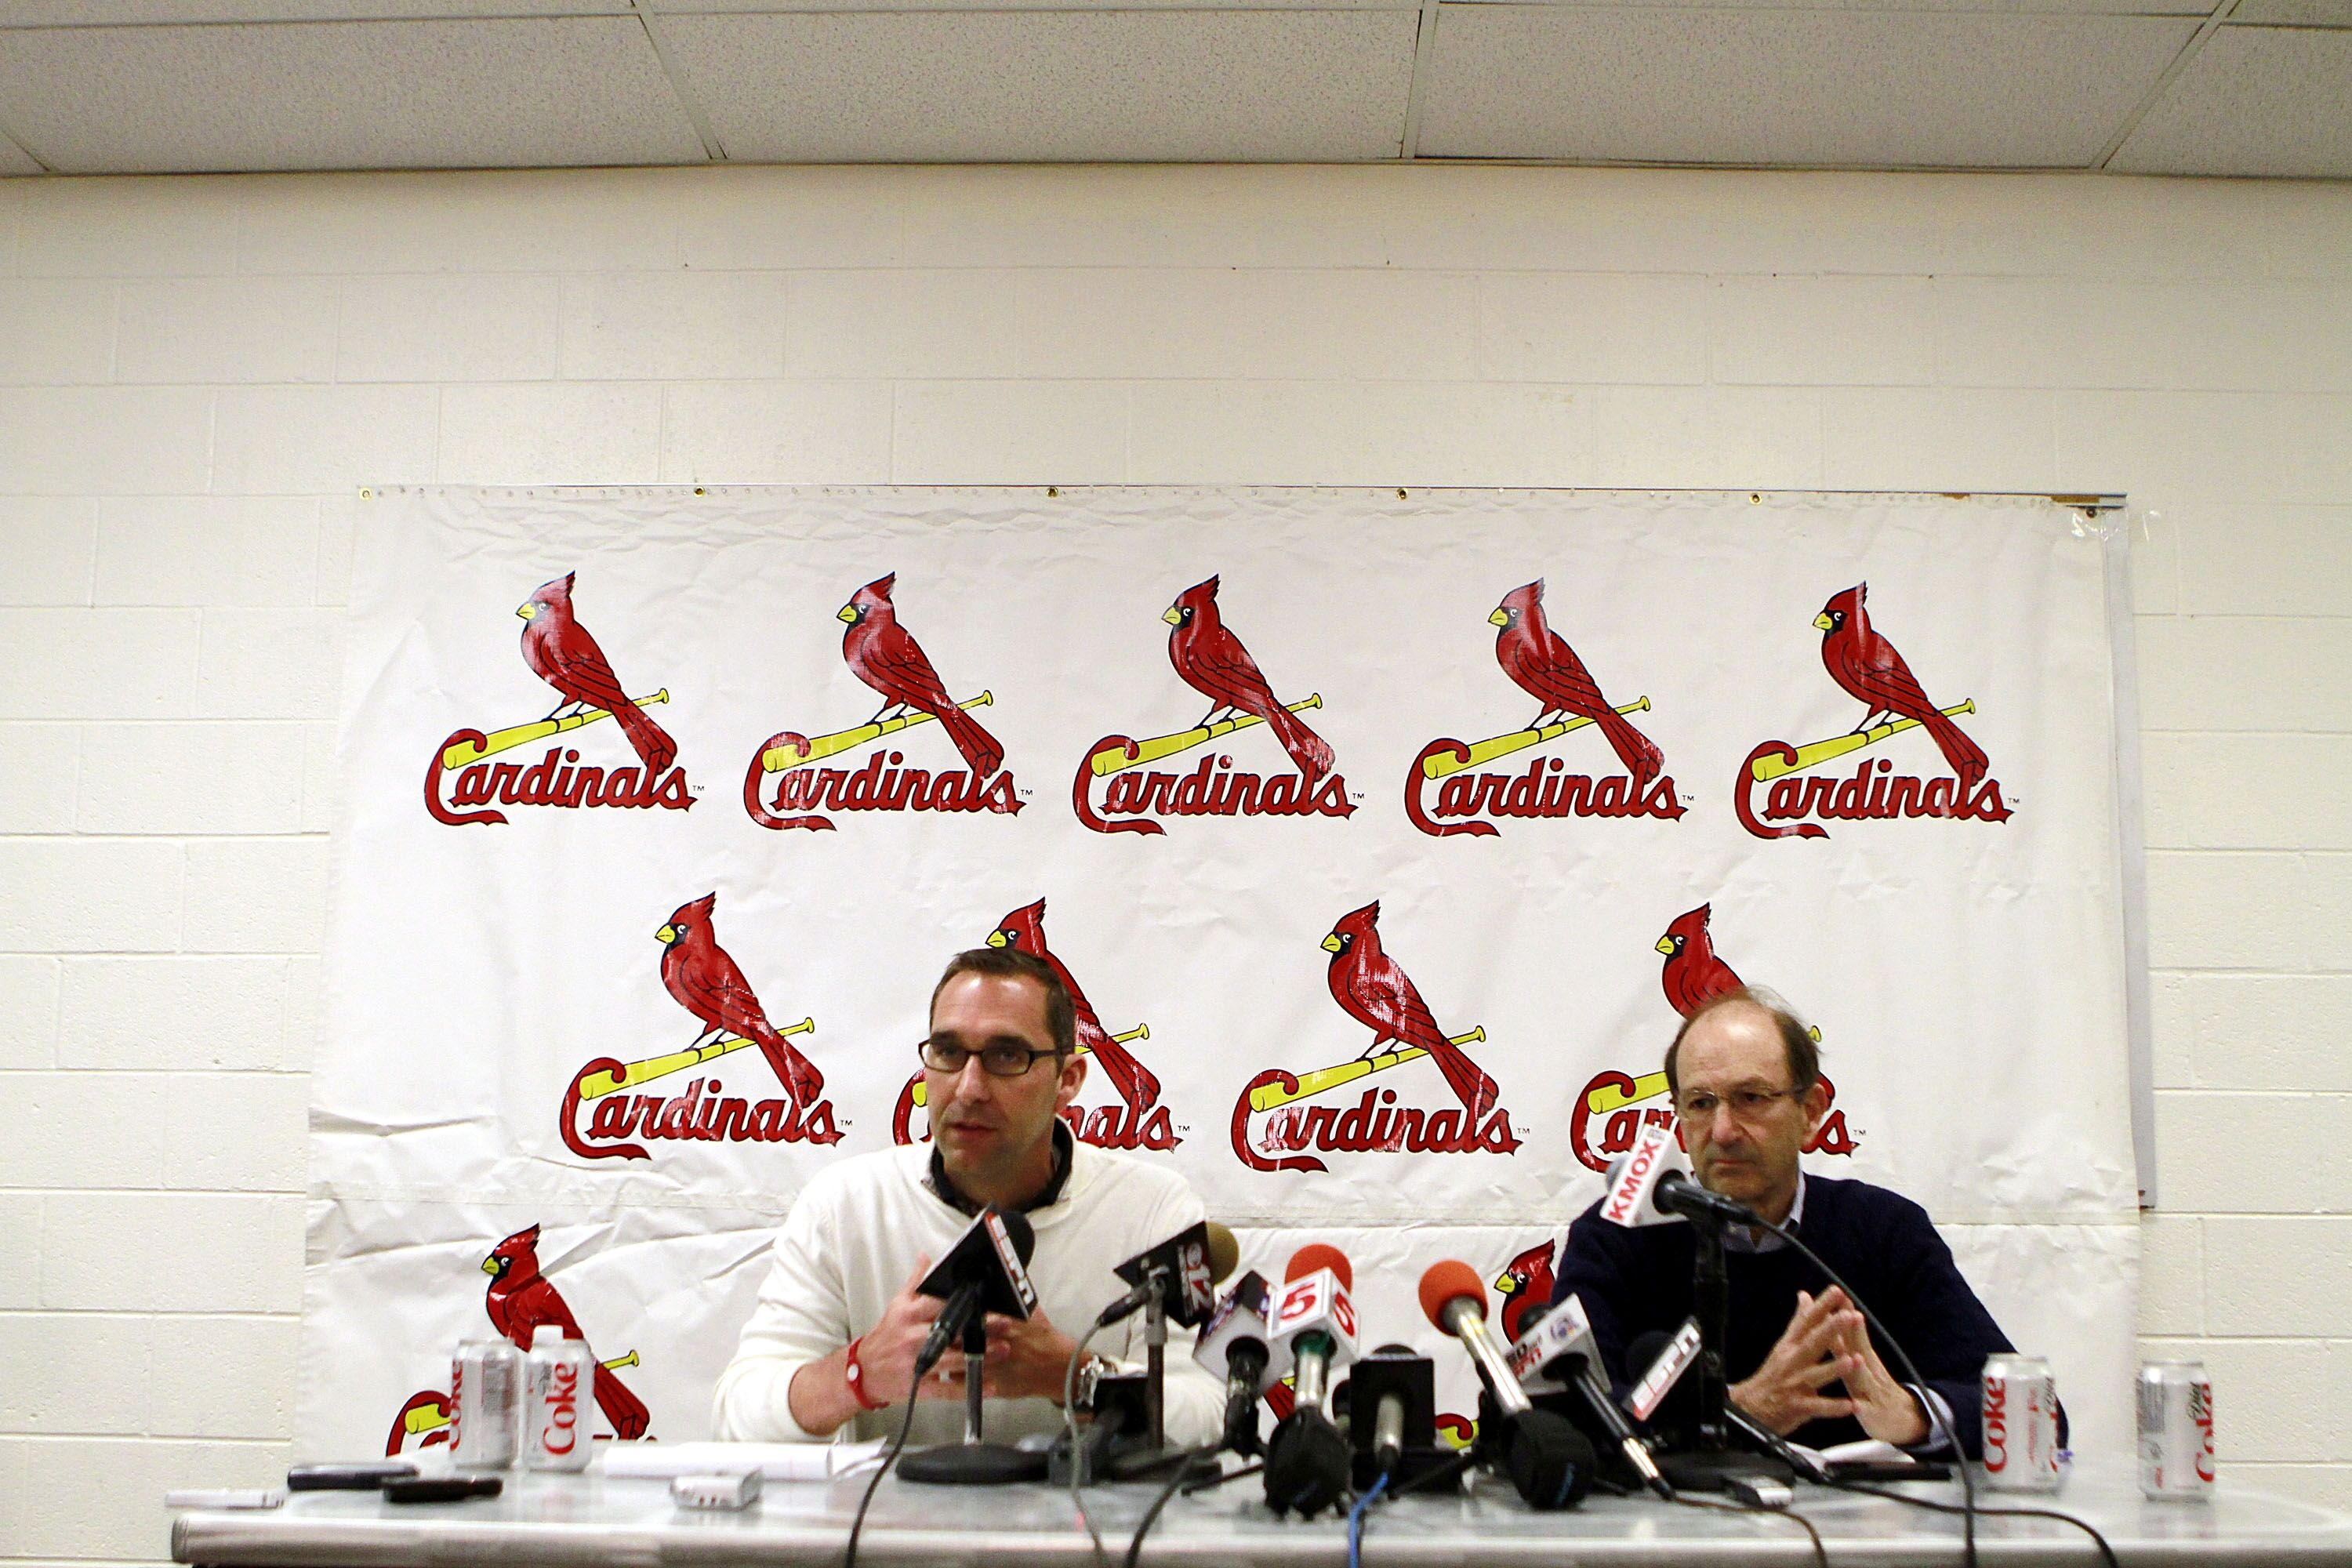 109186646-st-louis-cardinals-spring-training-workout-session.jpg